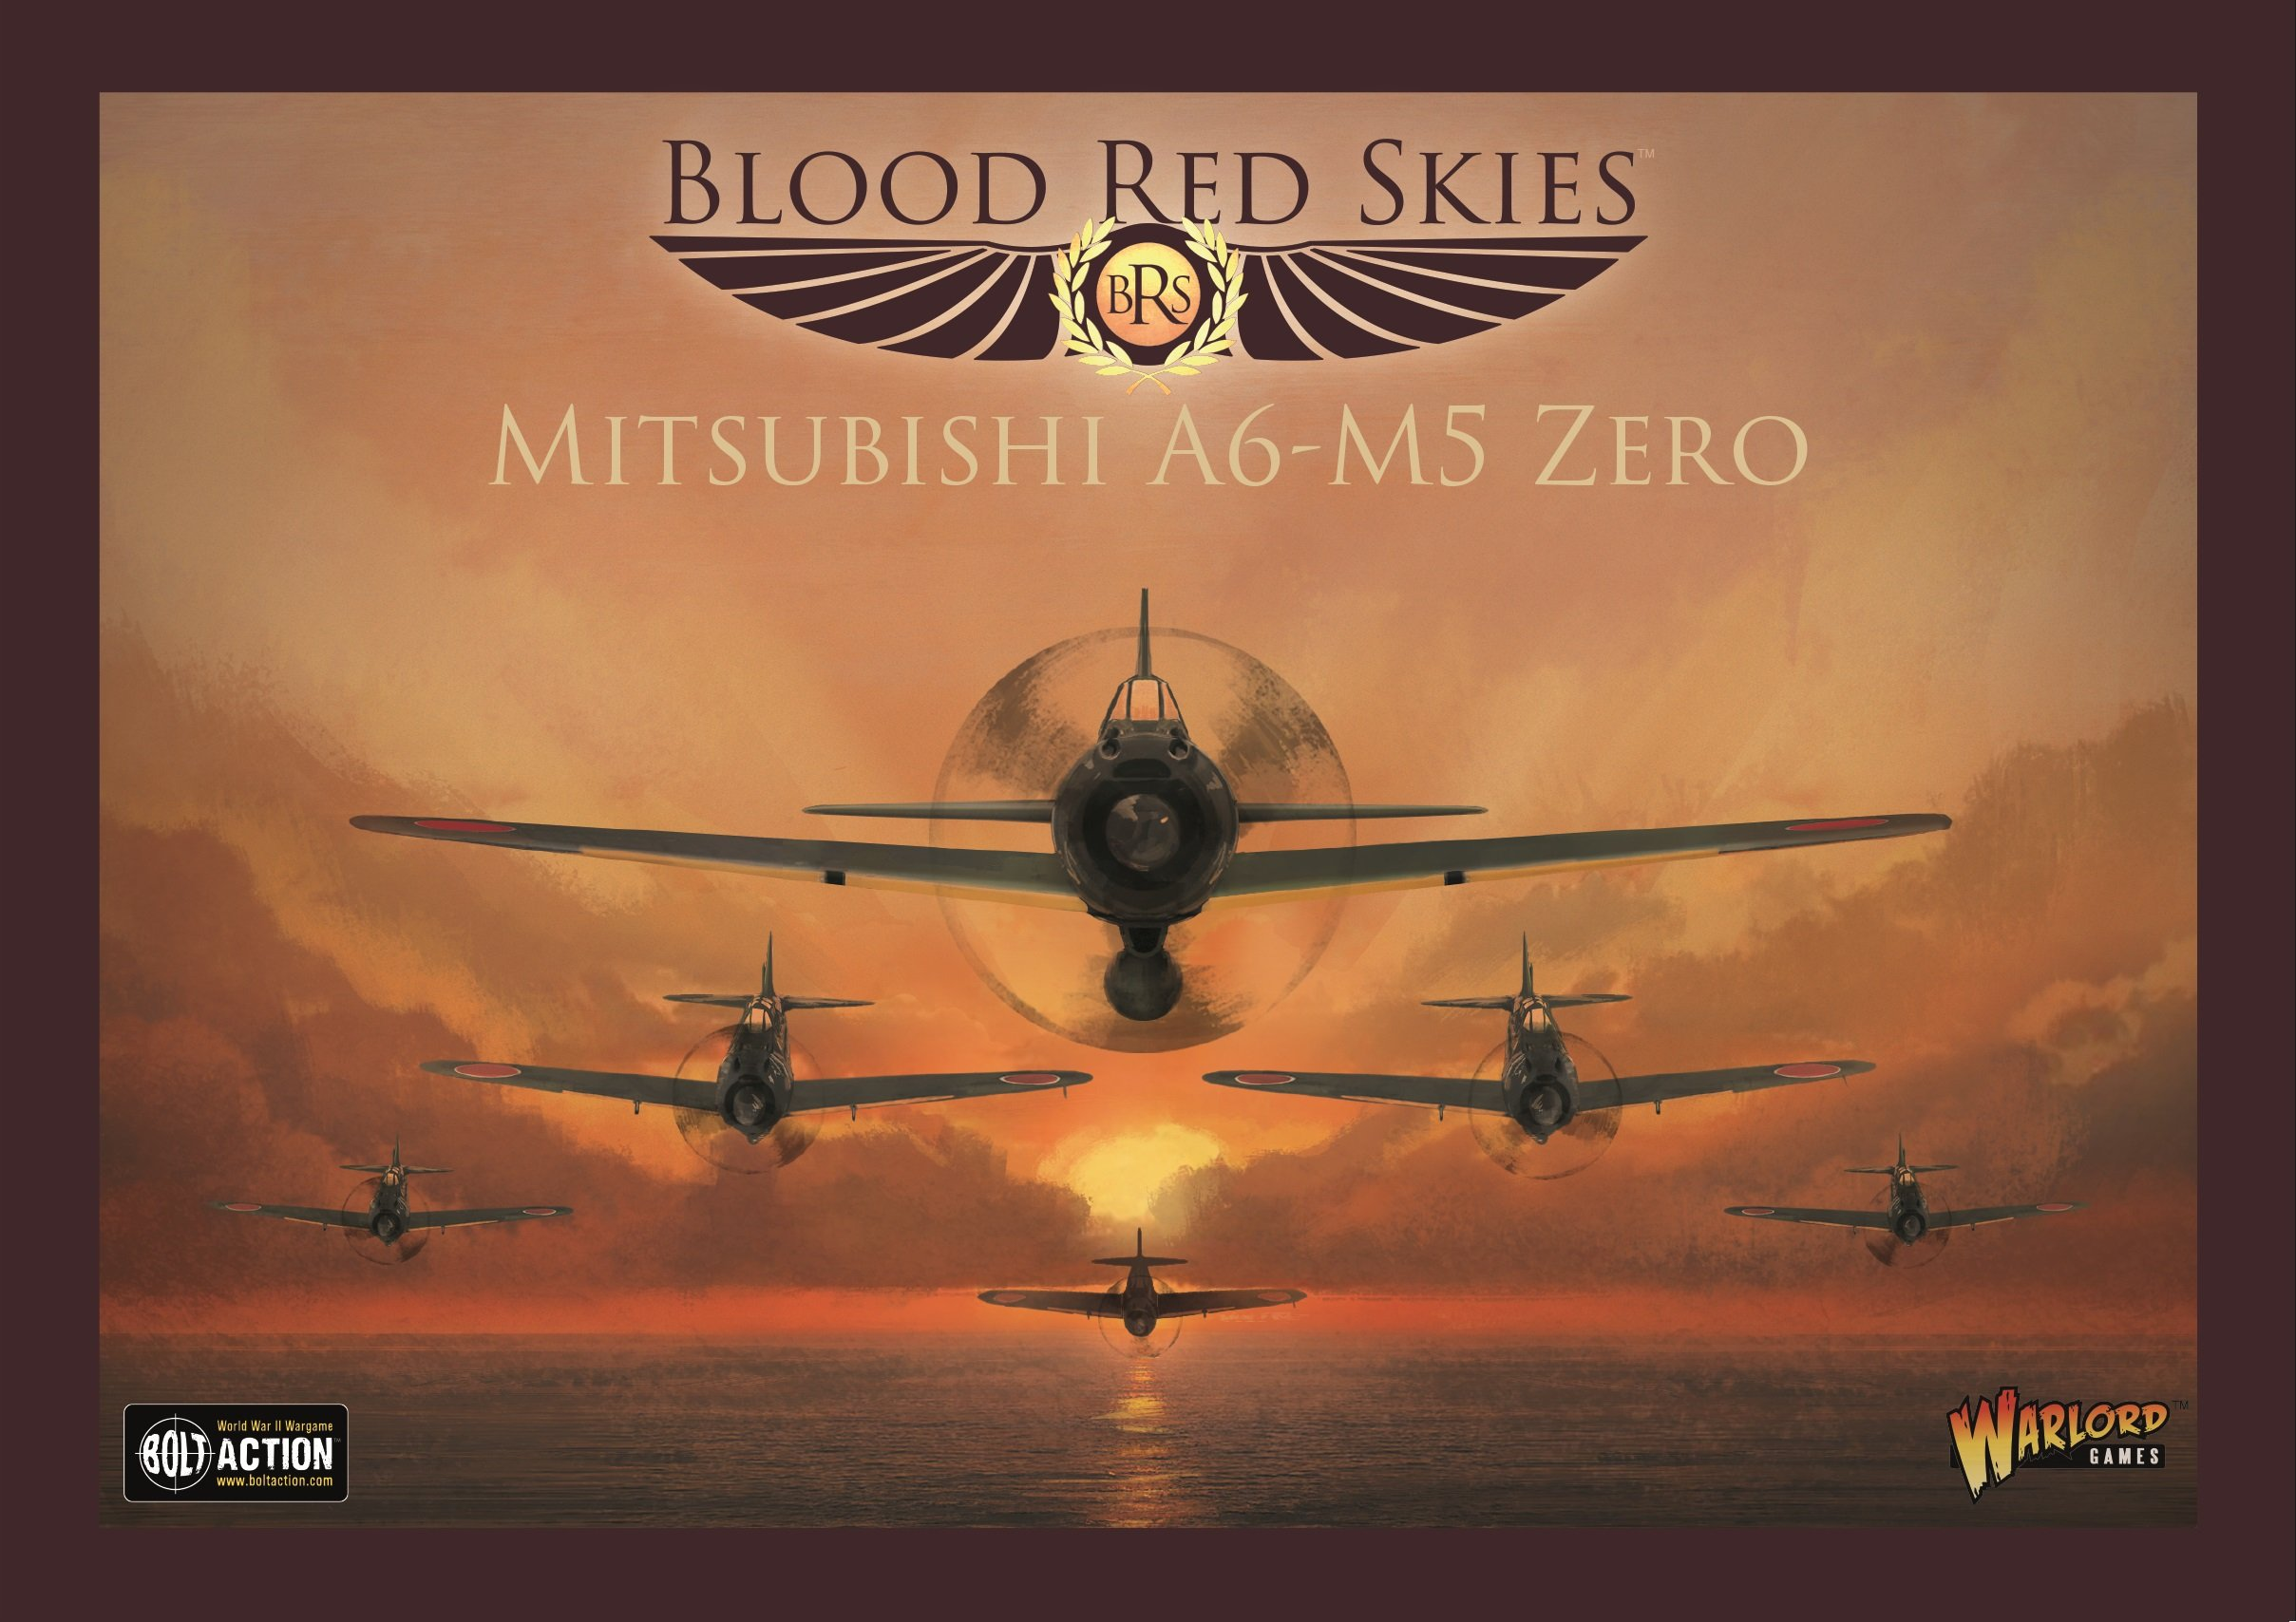 Bolt Action Warlord Games, Blood Red Skies - Mitsubishi A6-M5 Zero - Air Combat Game Miniatures